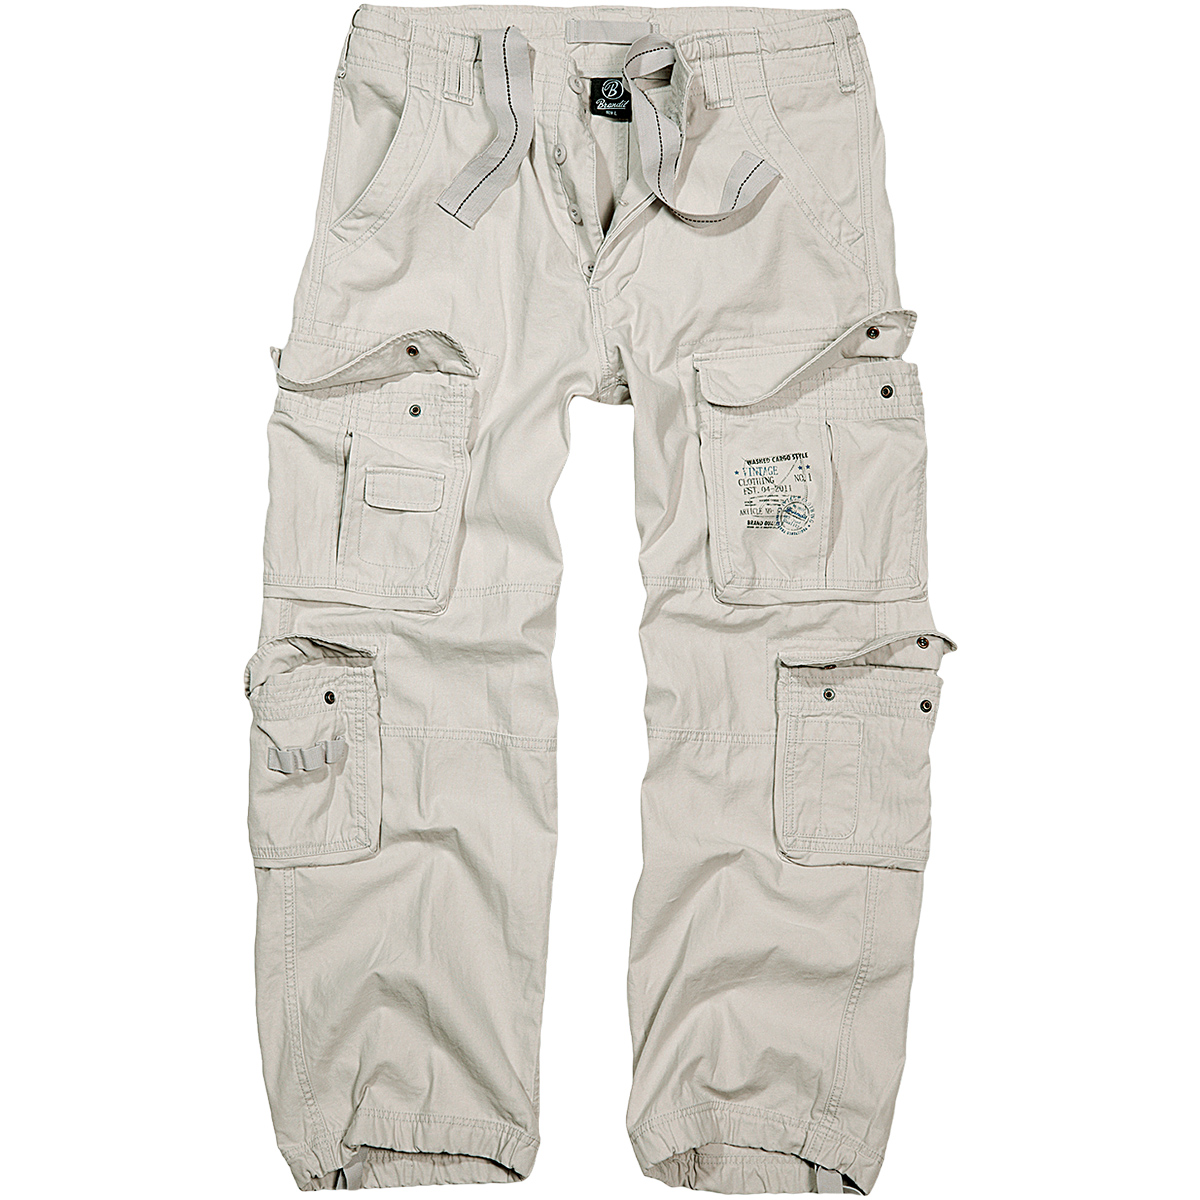 42b8b966d8 Details about BRANDIT MENS CLASSIC PURE VINTAGE COMBAT TROUSERS OFF DUTY  TRAVEL PANT OLD WHITE